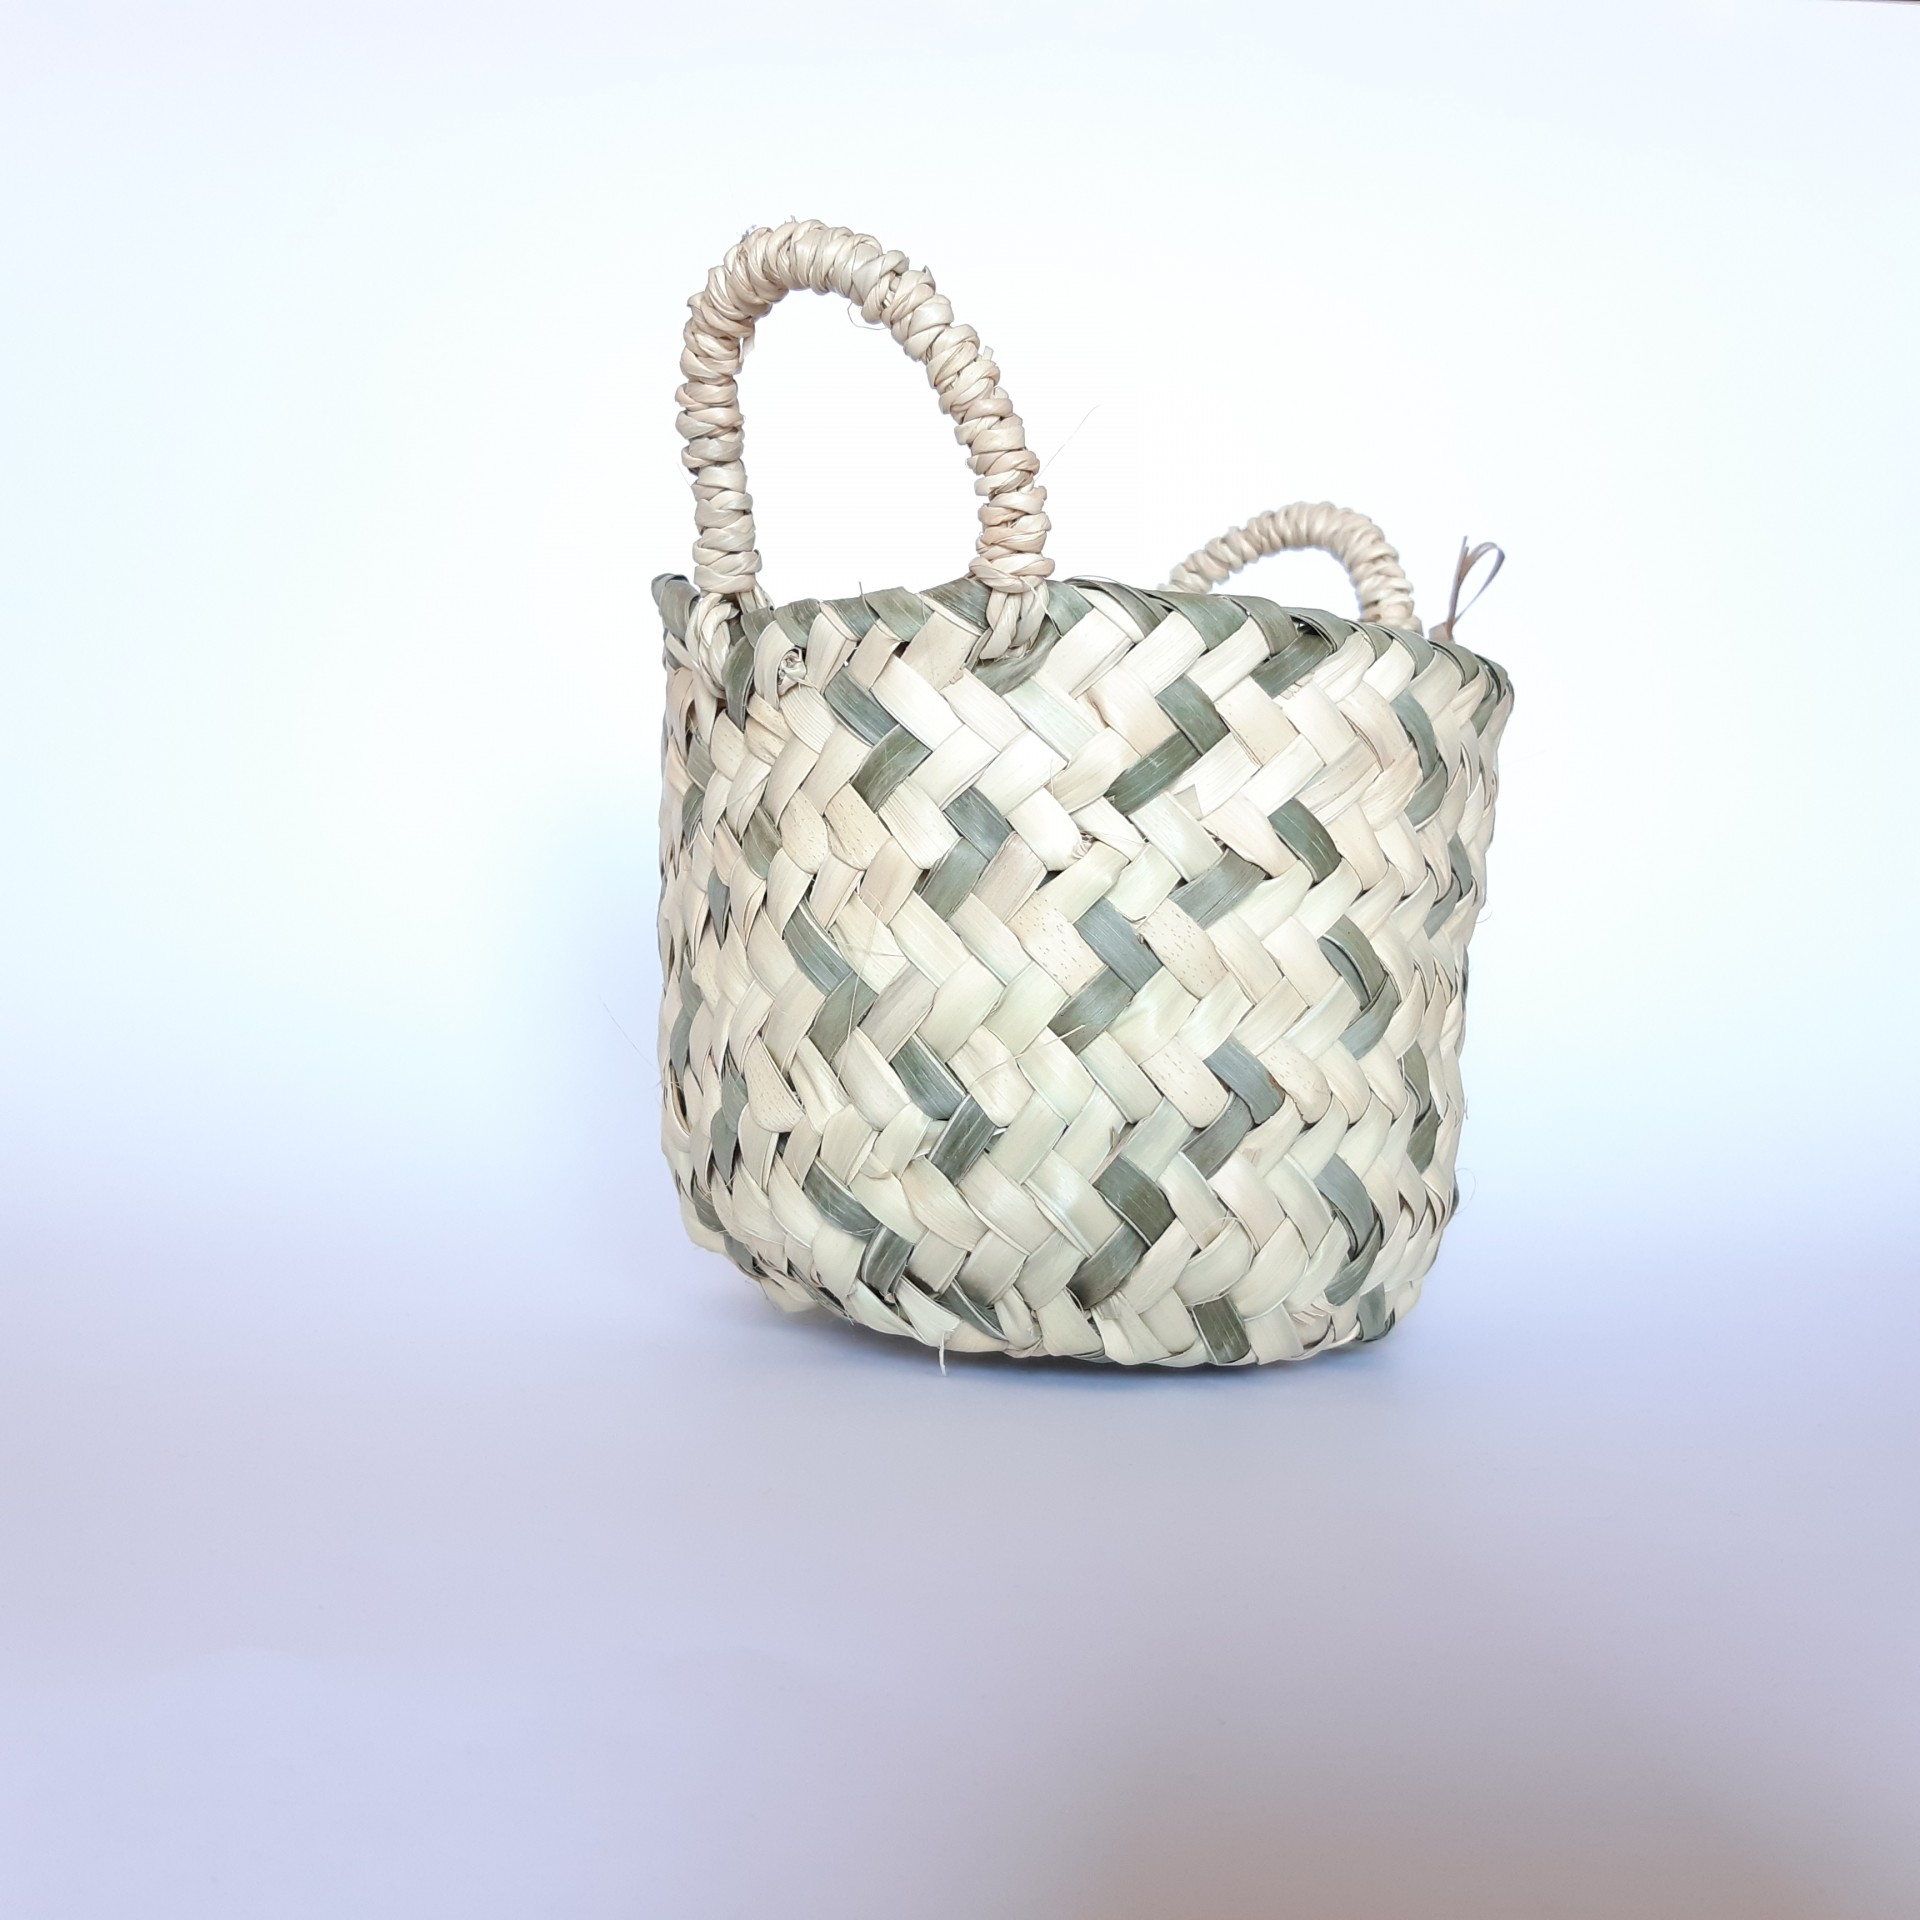 Multipurpose mini basket / Cesta multiusos mini